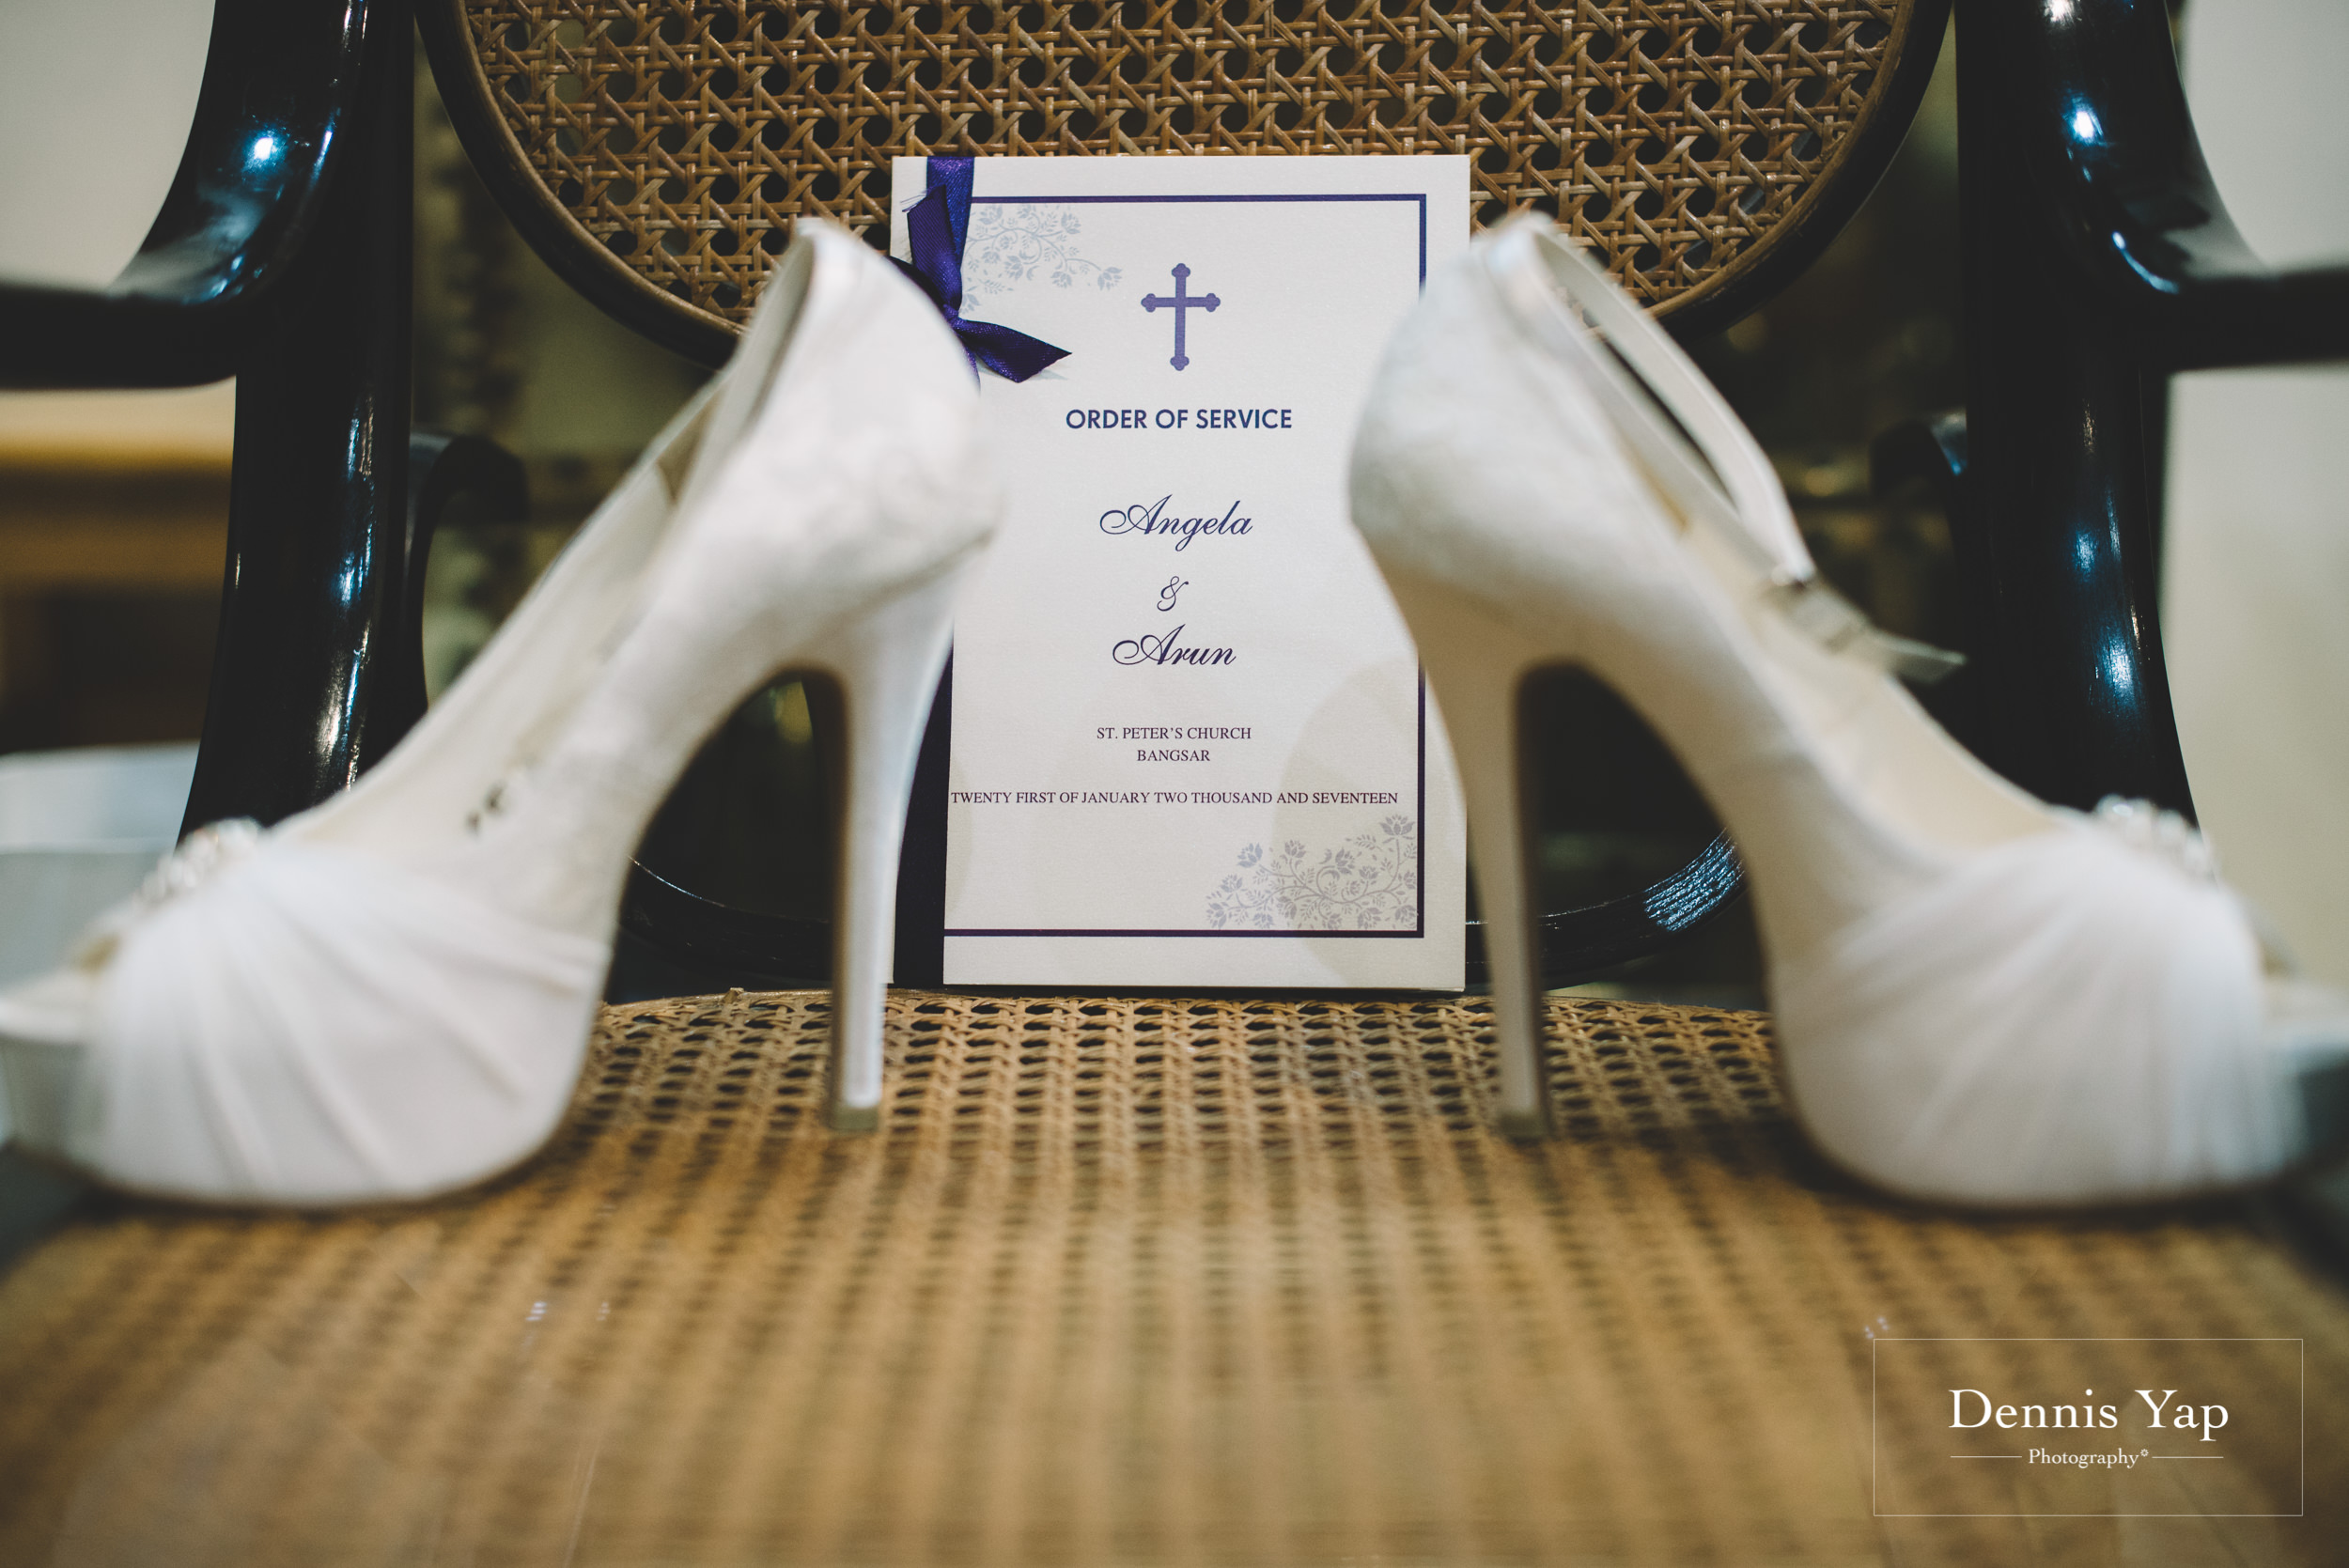 arun angela church wedding st peter bangsar dennis yap photography-1.jpg